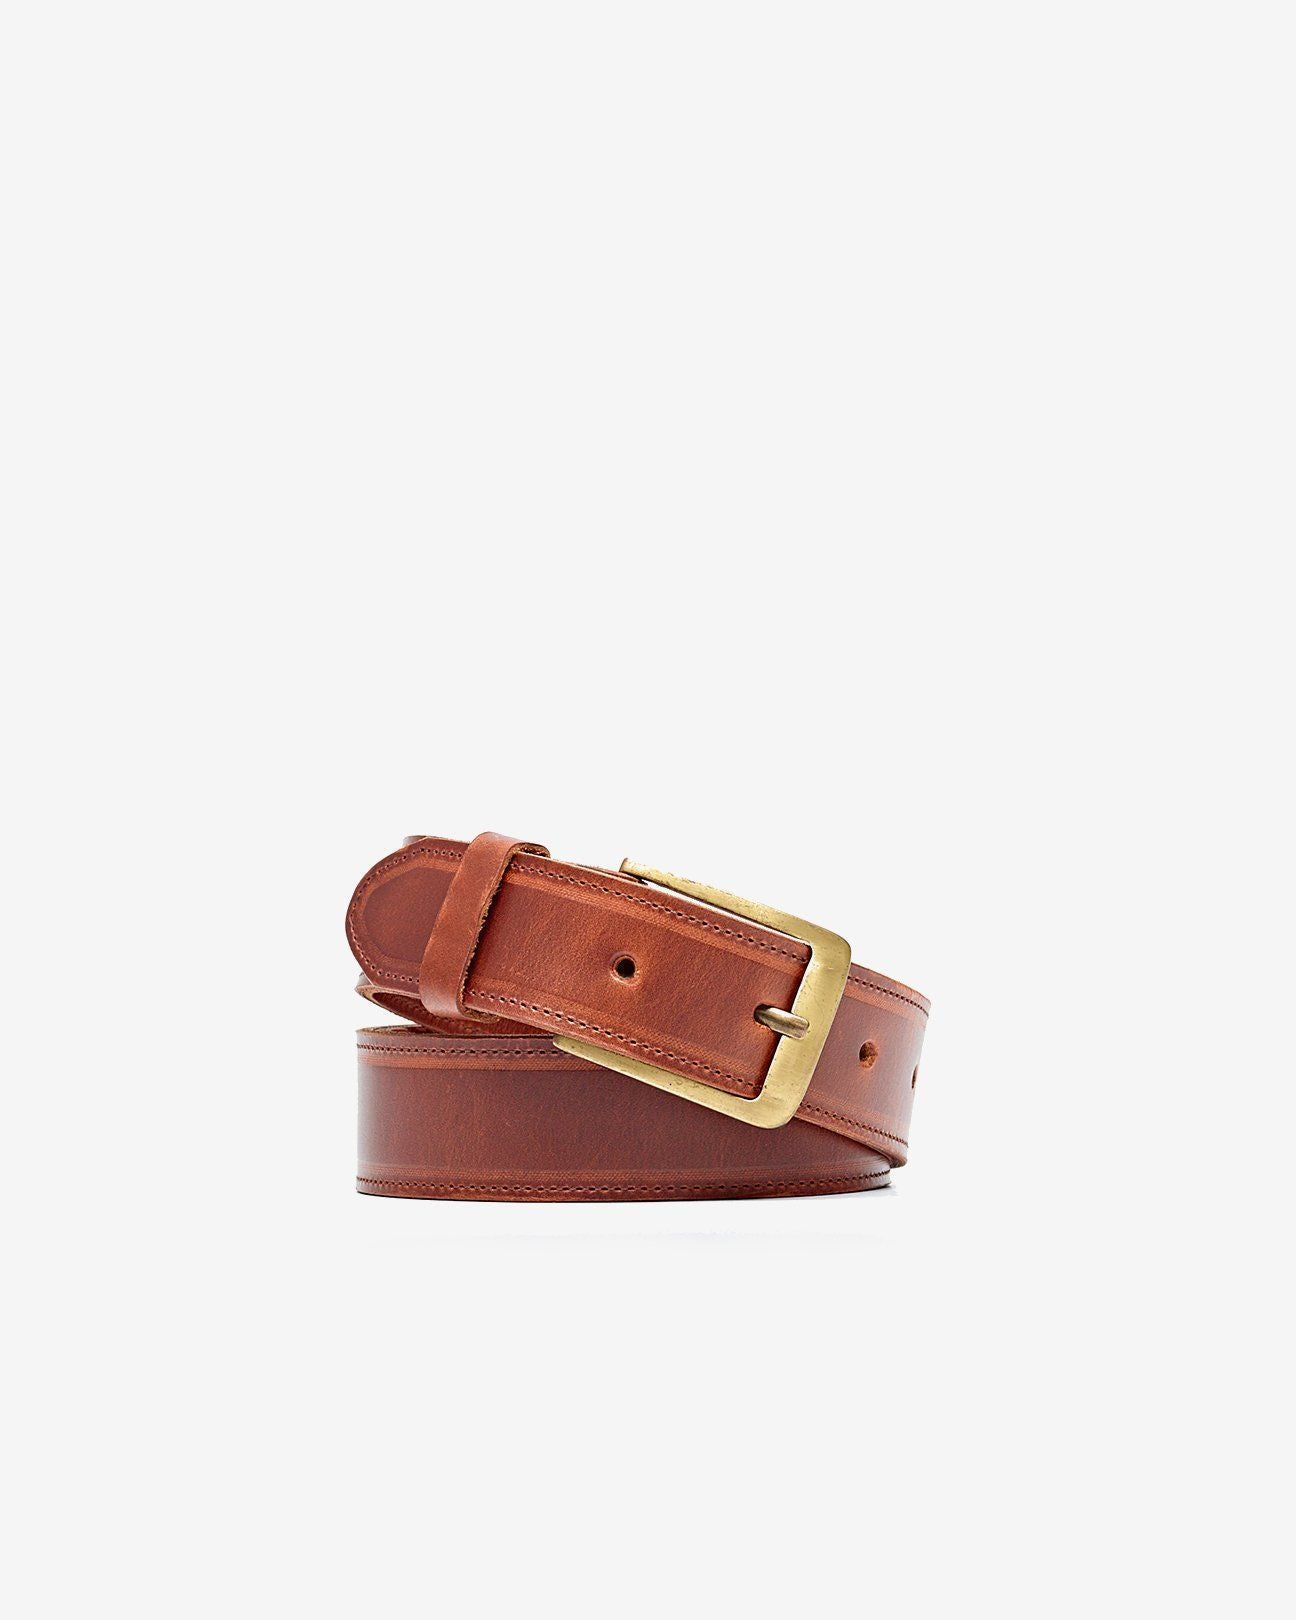 Nisolo fair trade belt for guys - ethical holiday gifts for him